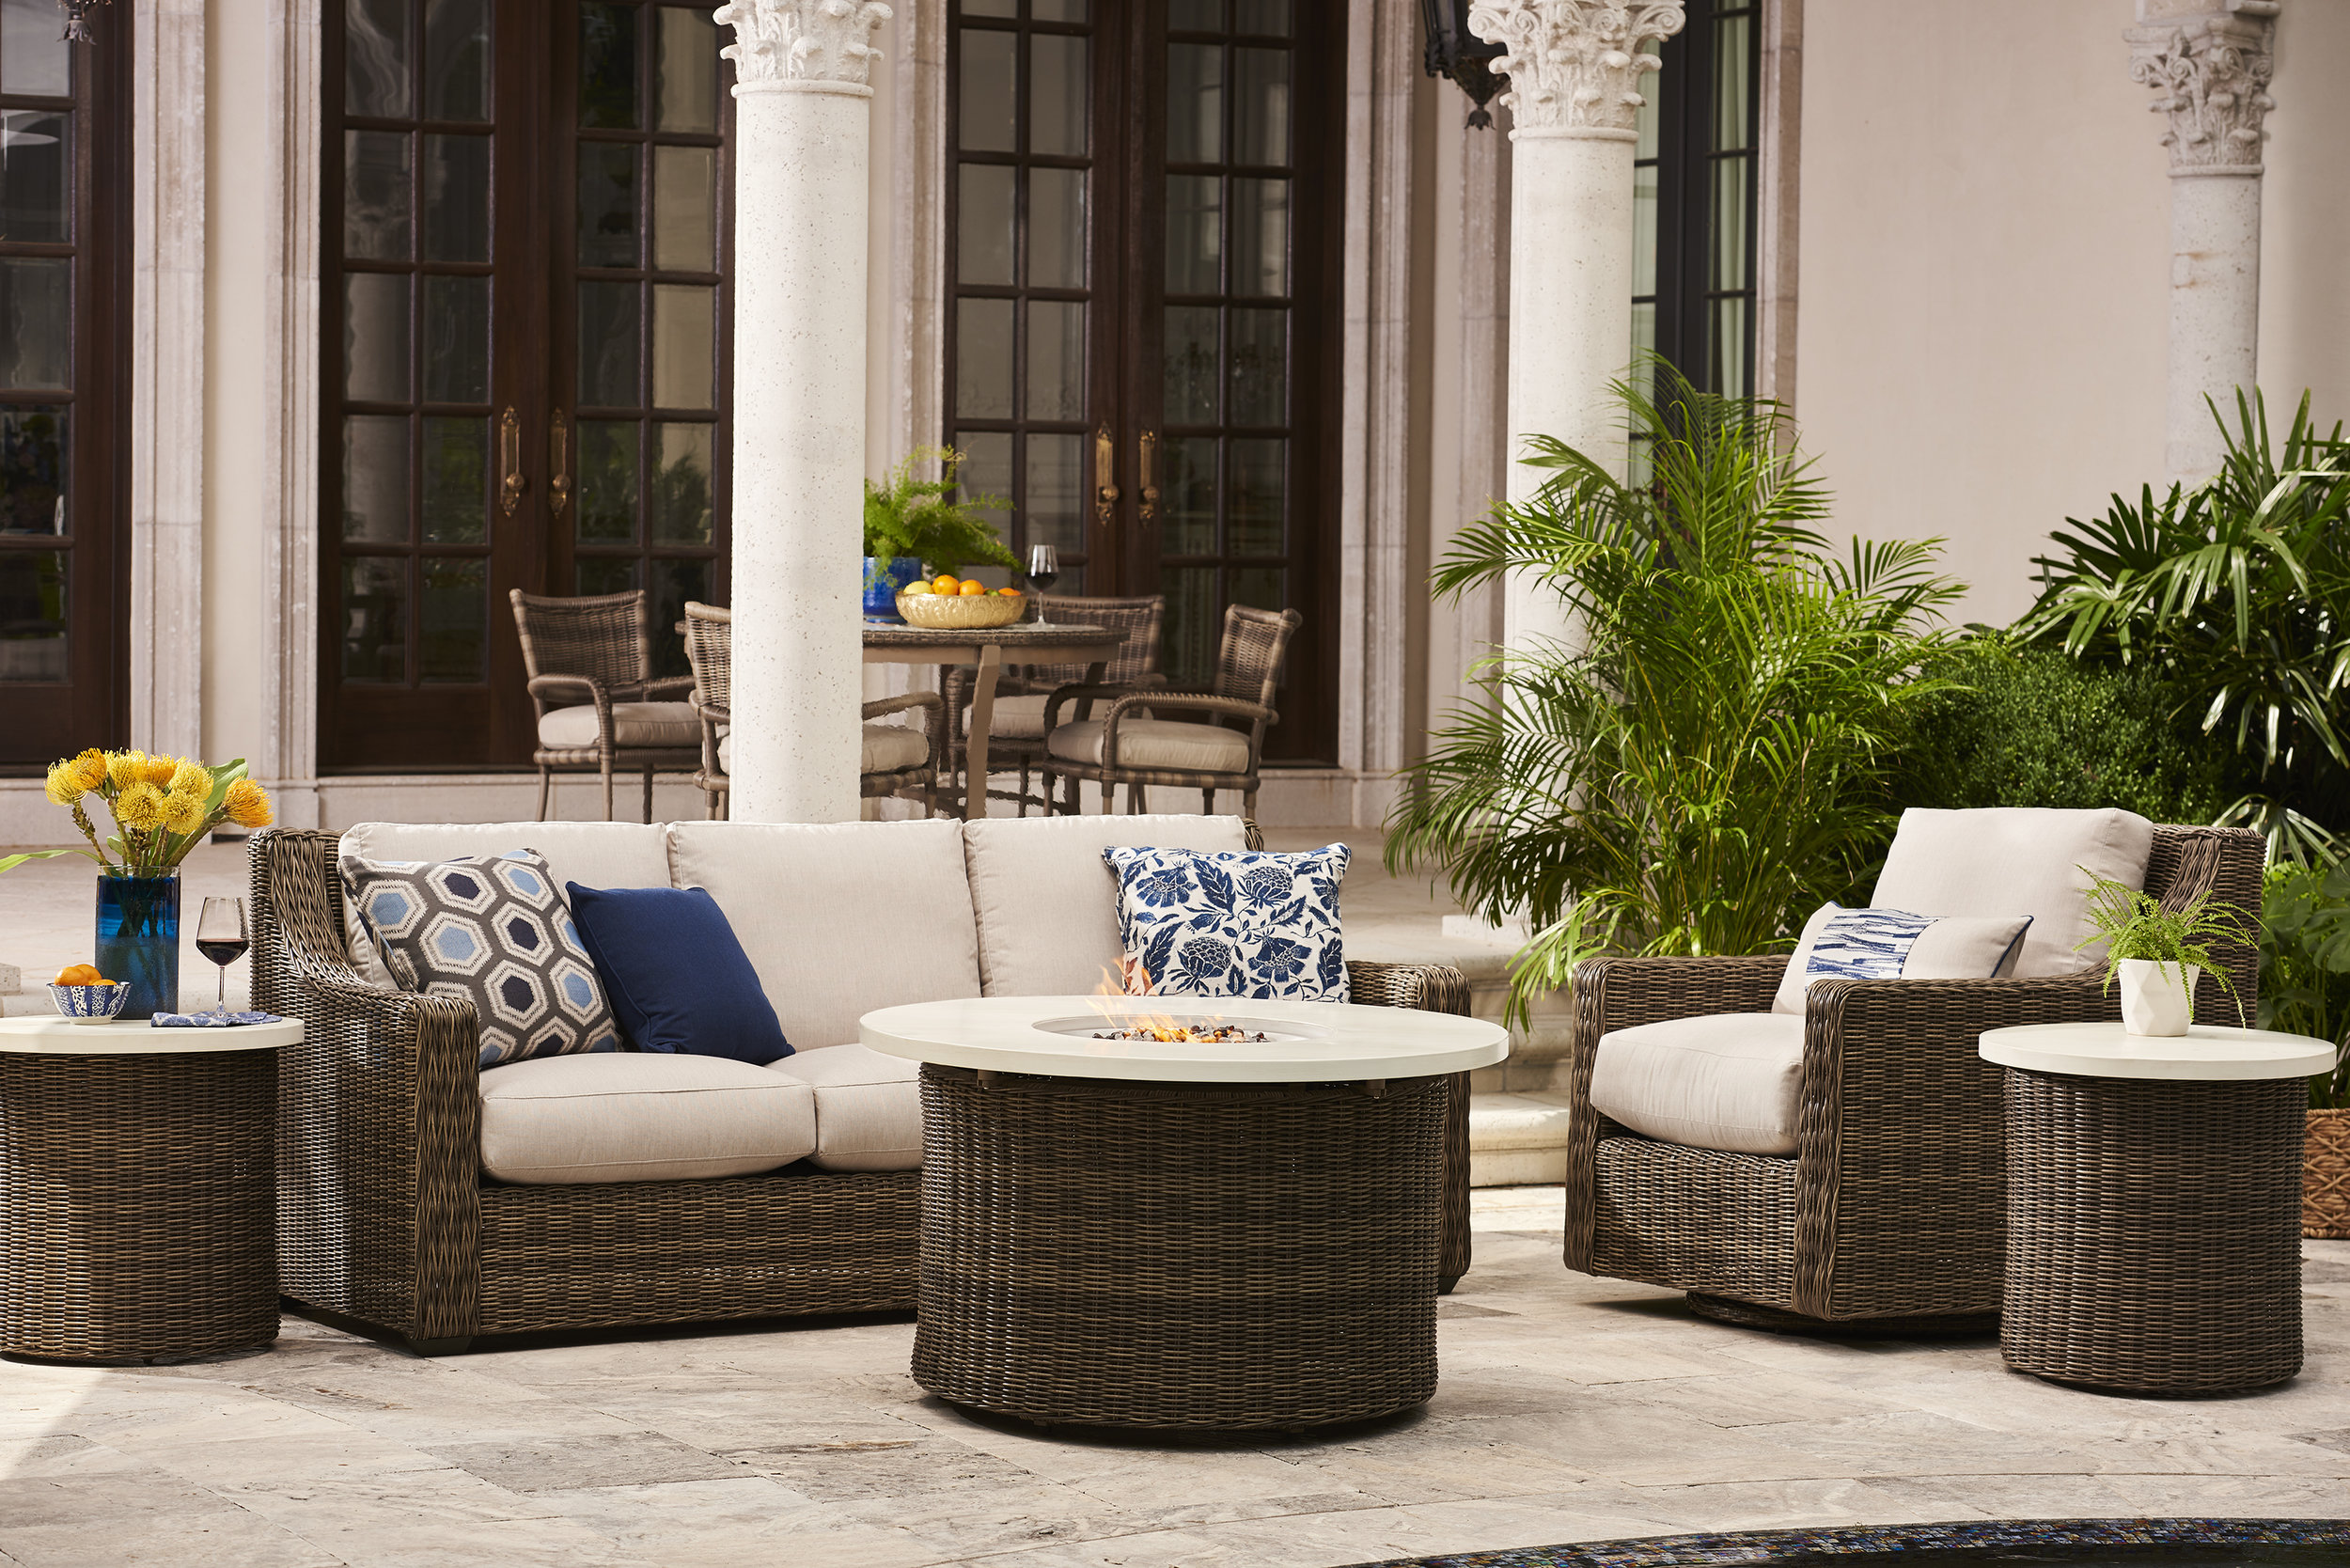 Oasis Collection provides a peaceful outdoor retreat which will always be in style. Construct of high quality, weather resistant materials, powder coated aluminum & synthetic wicker. The trademarked WEATHERMASTER Ultimate Outdoor Cushions offer superior comfort and longevity.